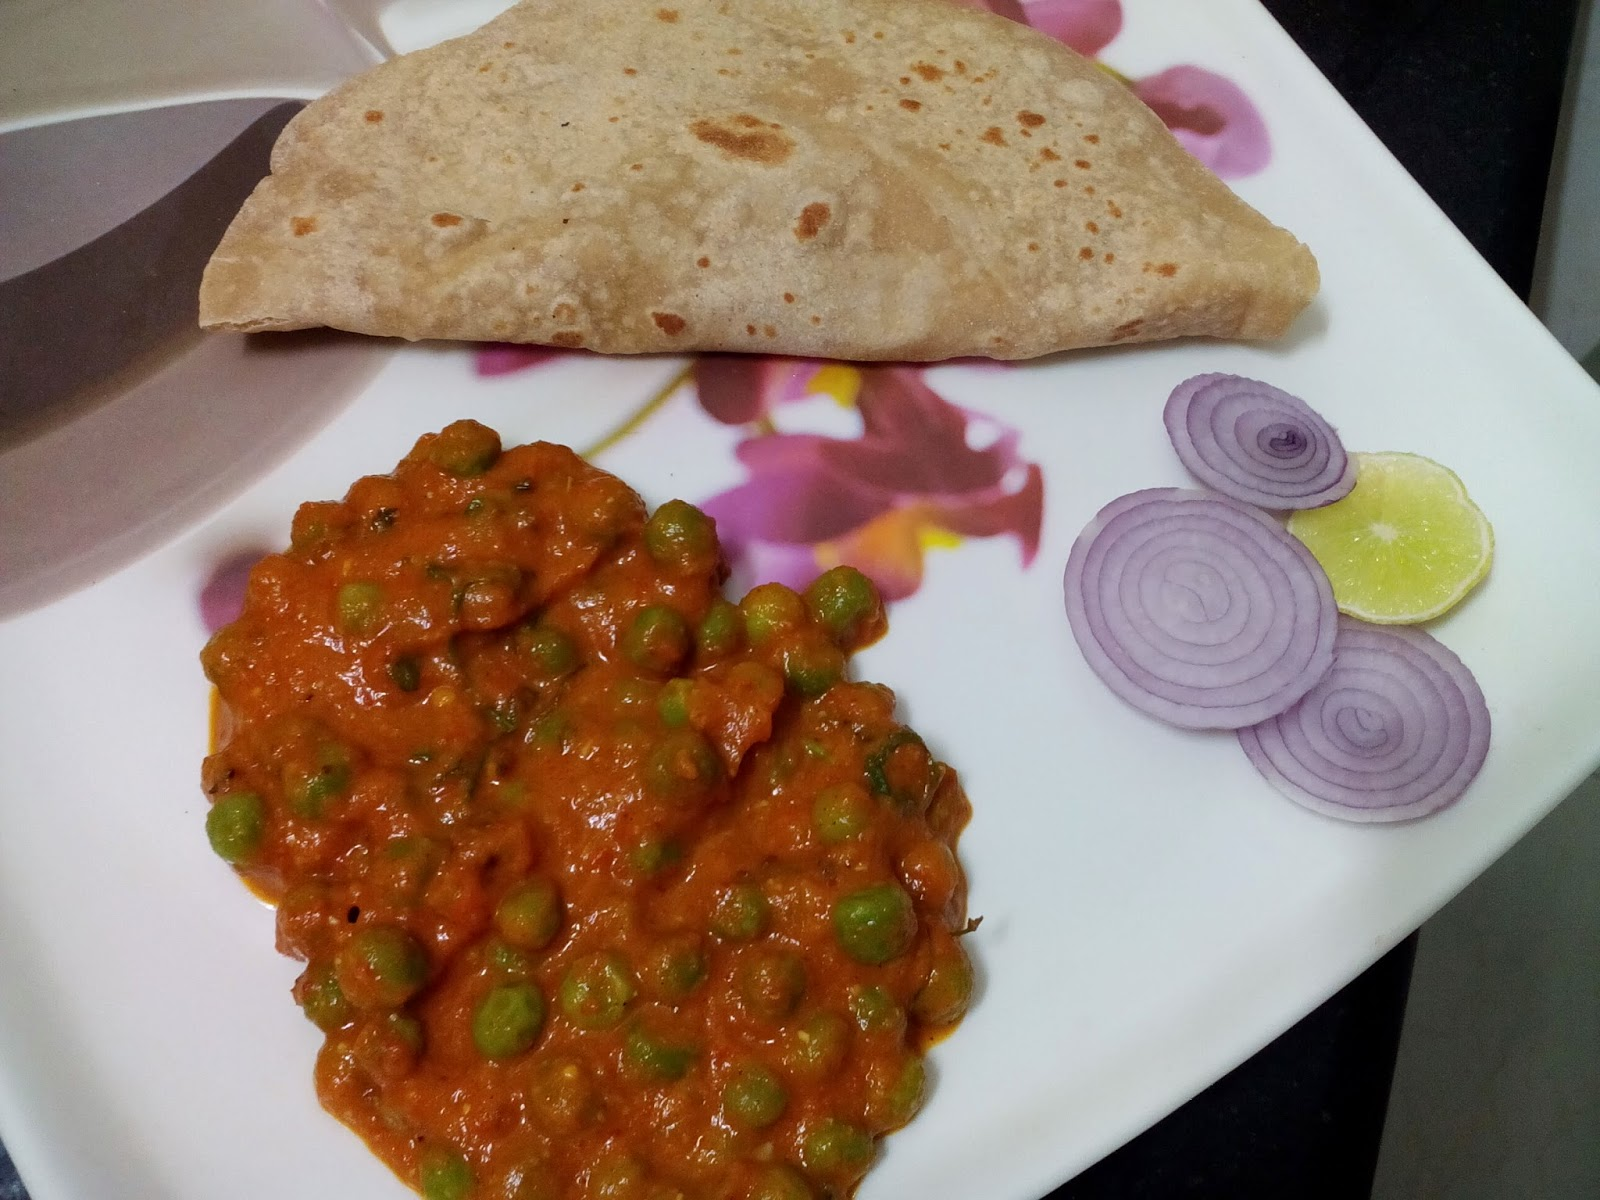 Green Peas Masala in Punjabi Dhaba Style (Green Peas cooked in